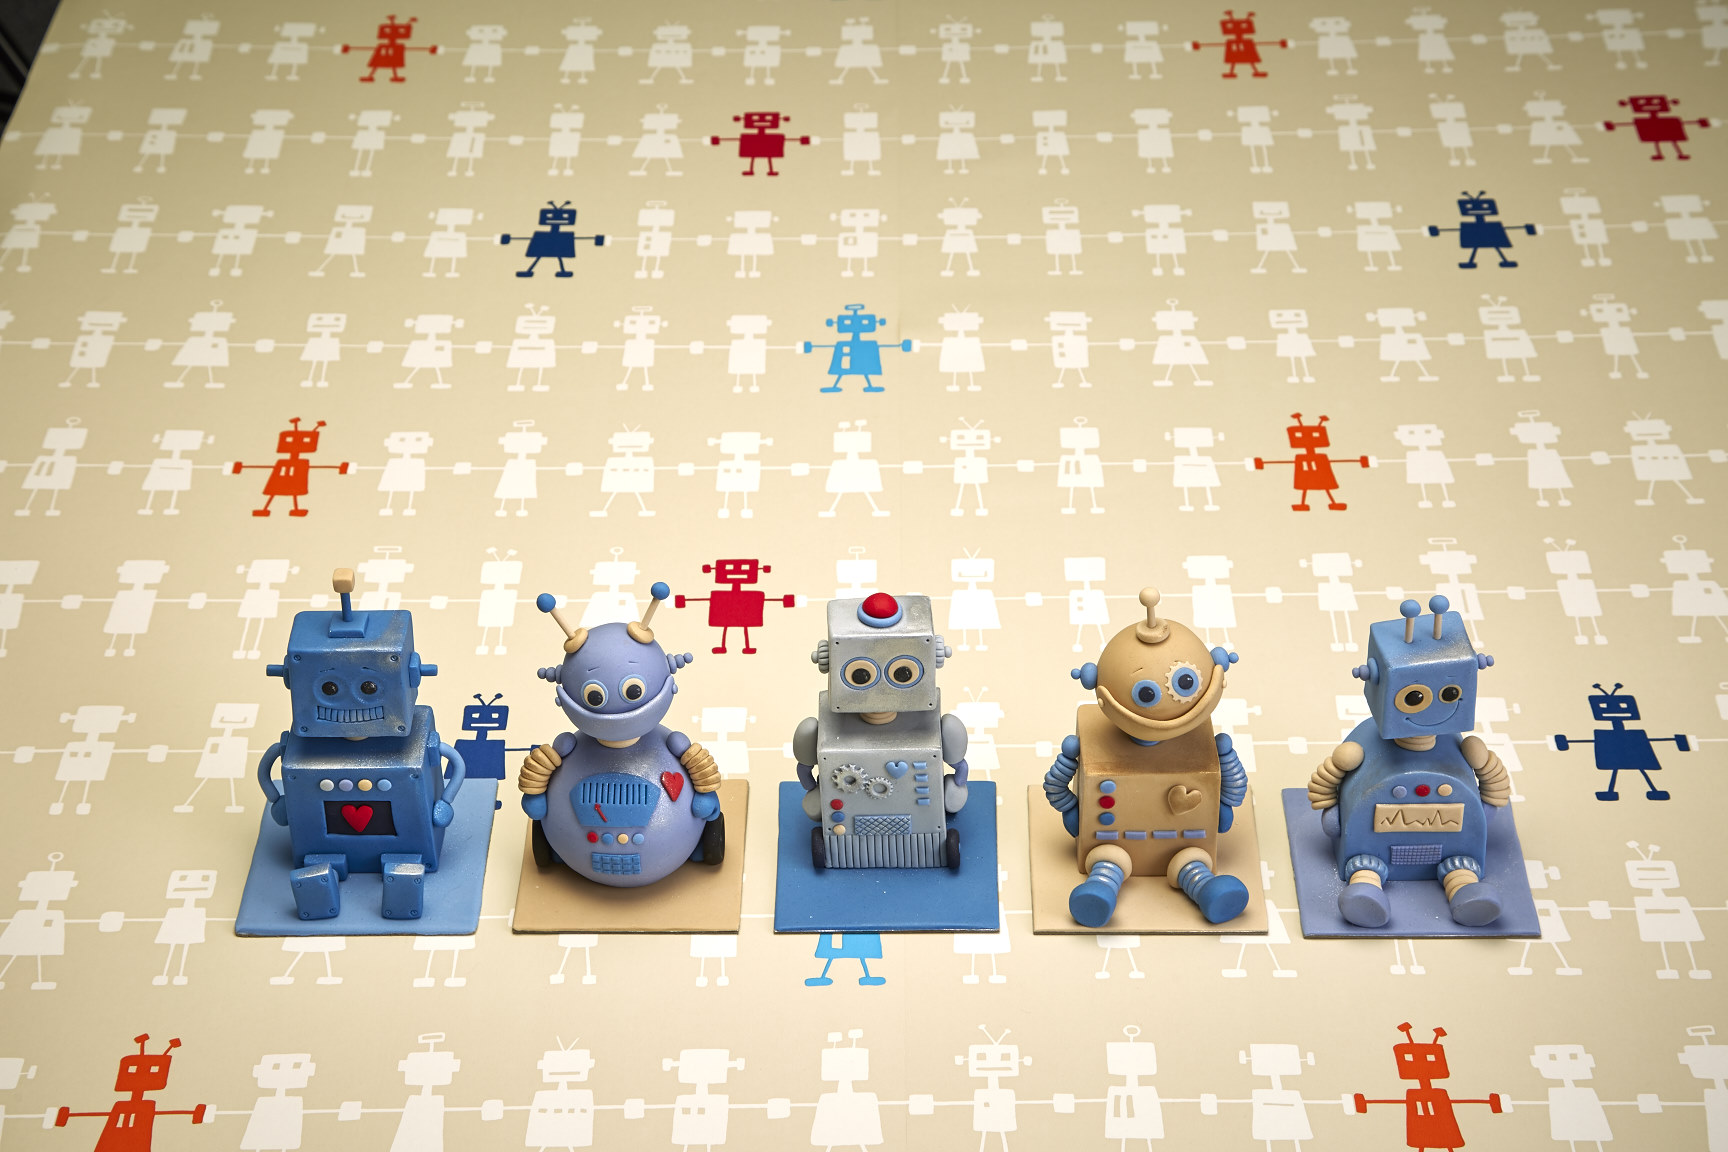 Mini Robot fondant figurines